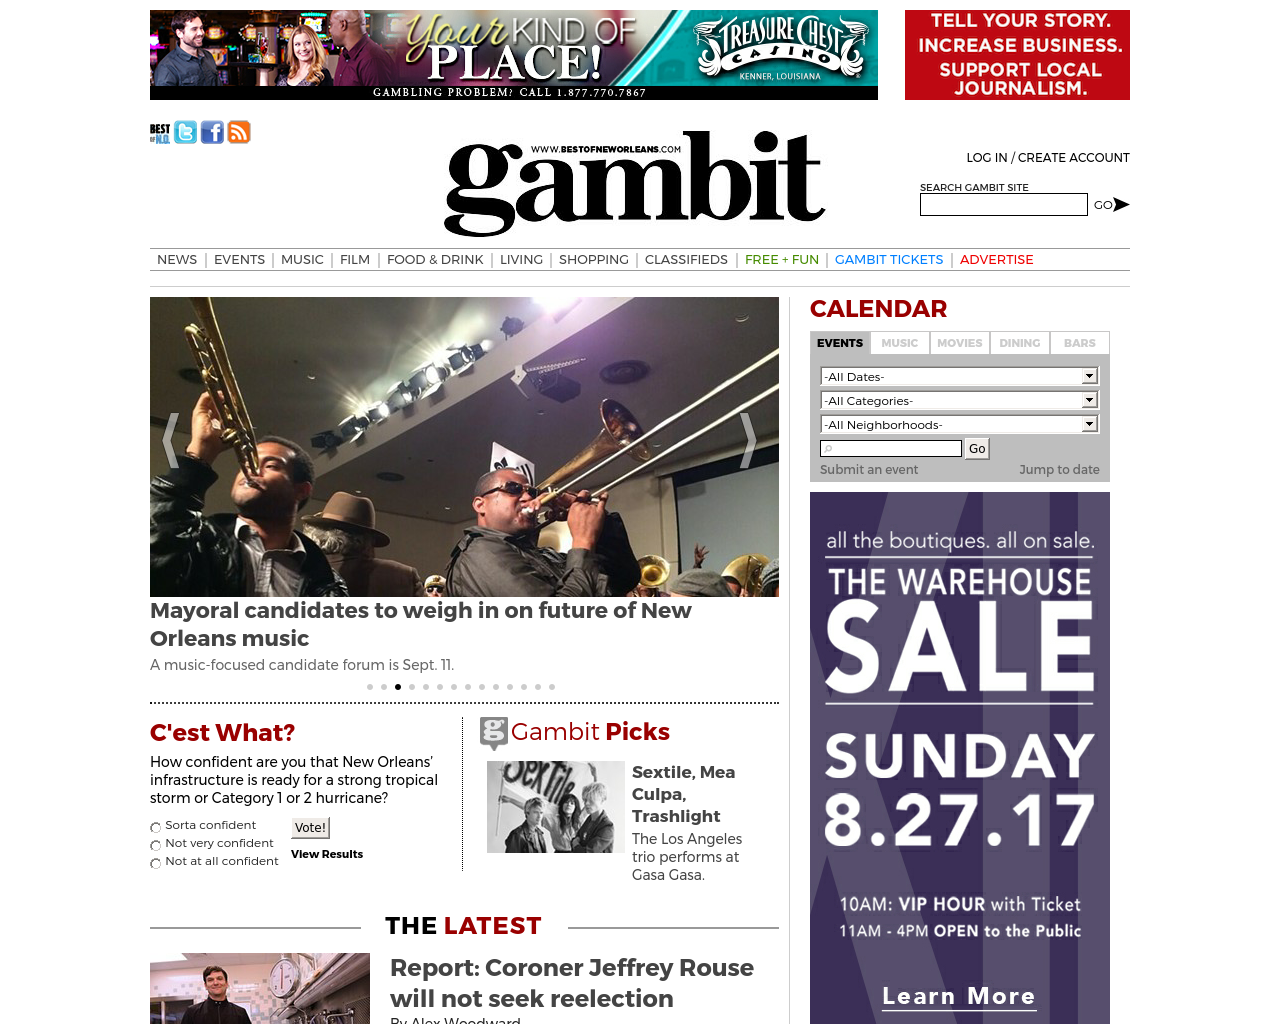 Gambit-Best-of-New-Orleans.com-Advertising-Reviews-Pricing